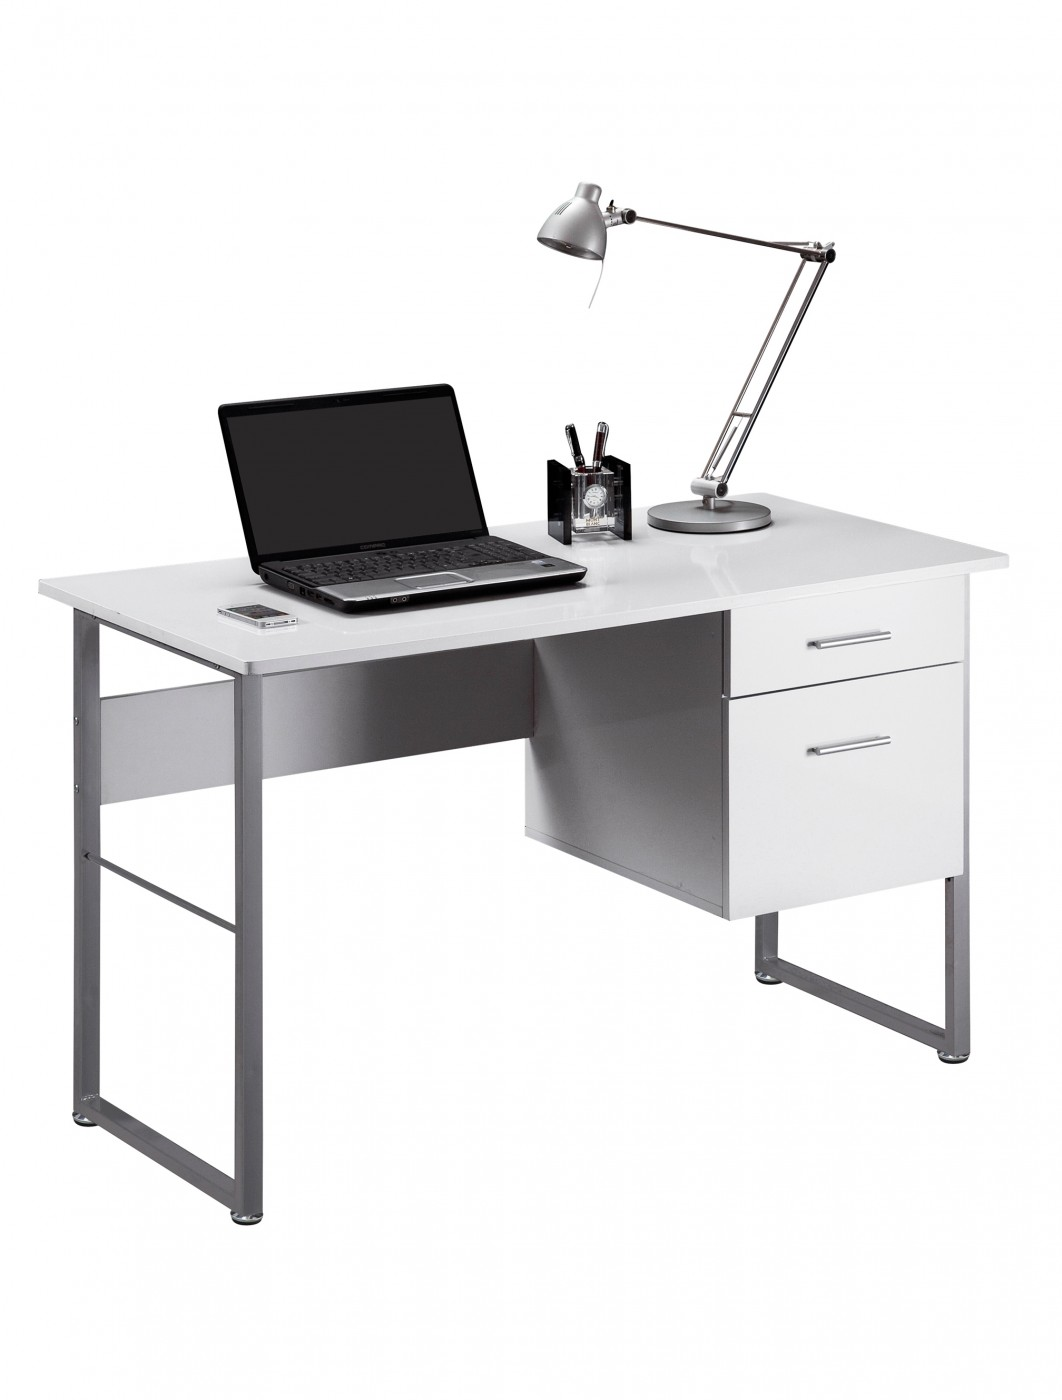 Awesome Home Gt Classic Desk Gt Executive Office Desk Bird By I4Mariani